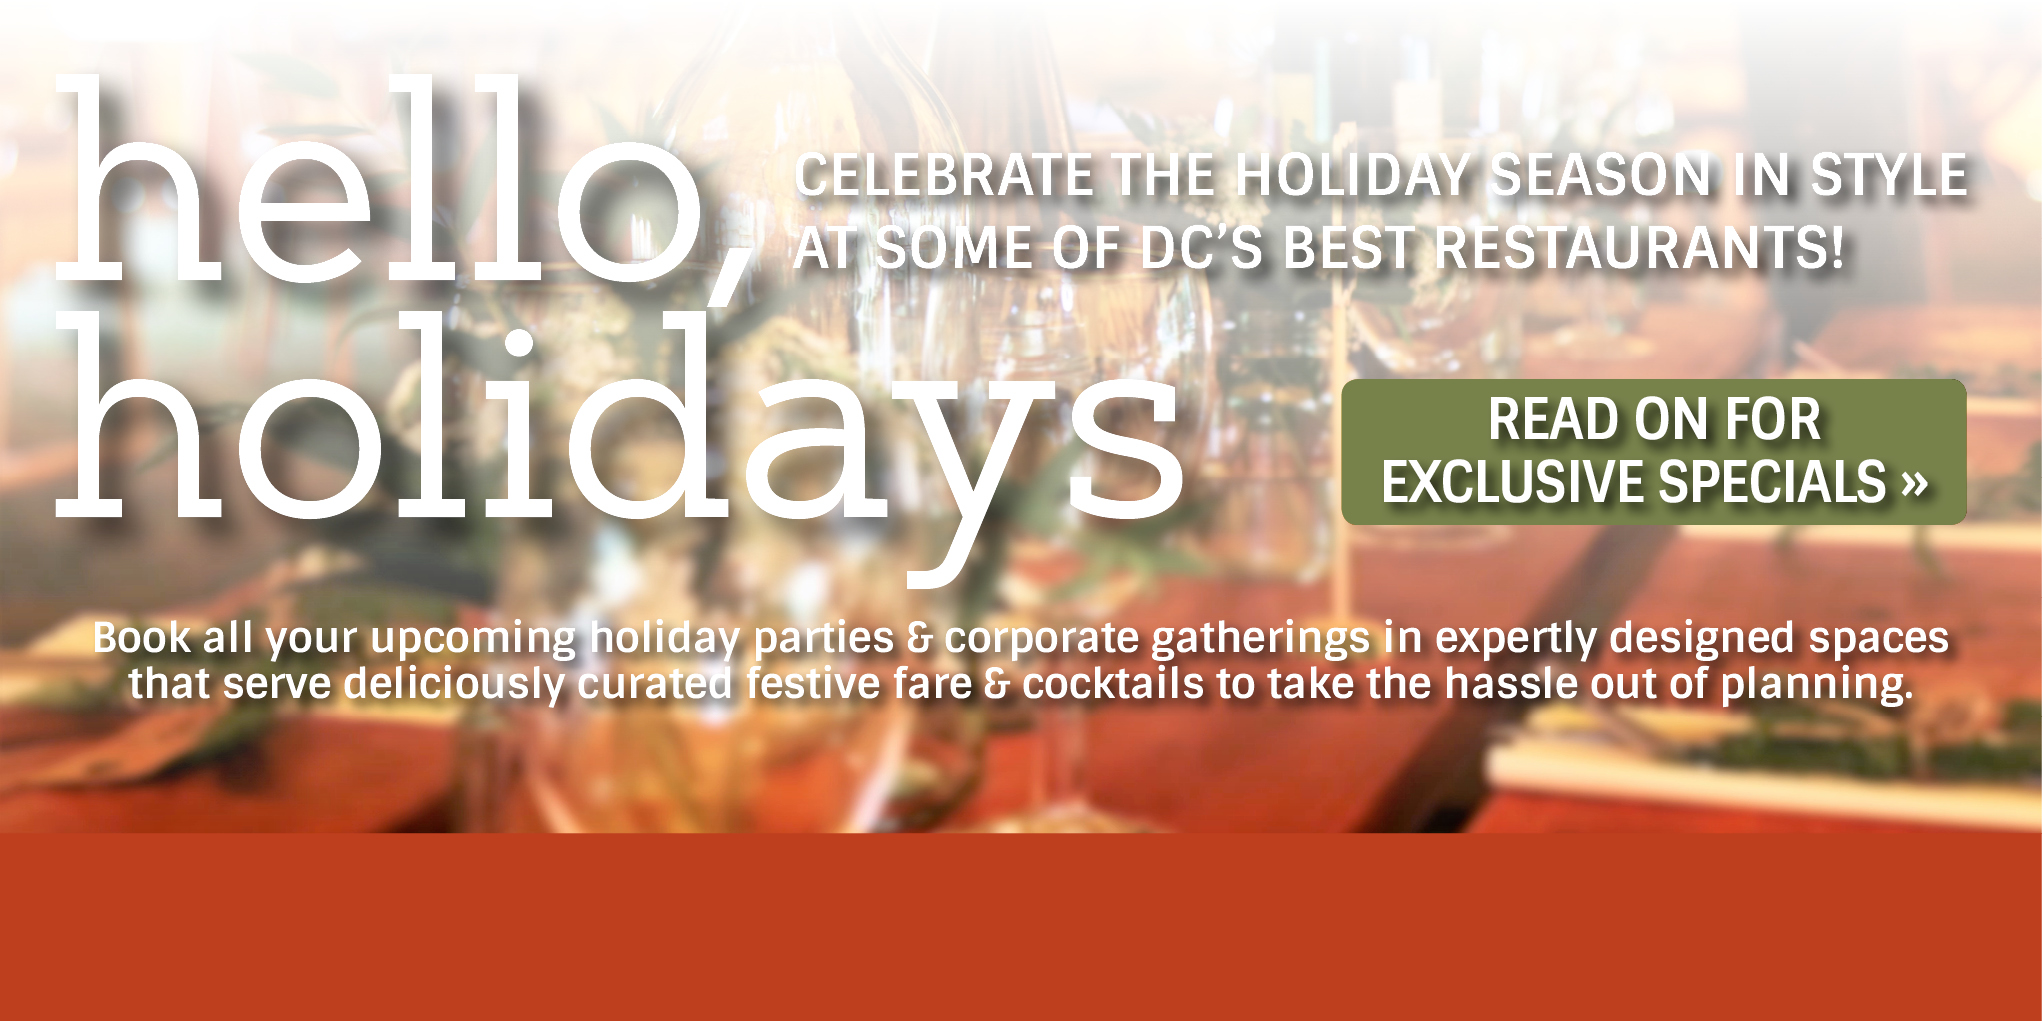 hello holidays dc restaurants offer diners private dining